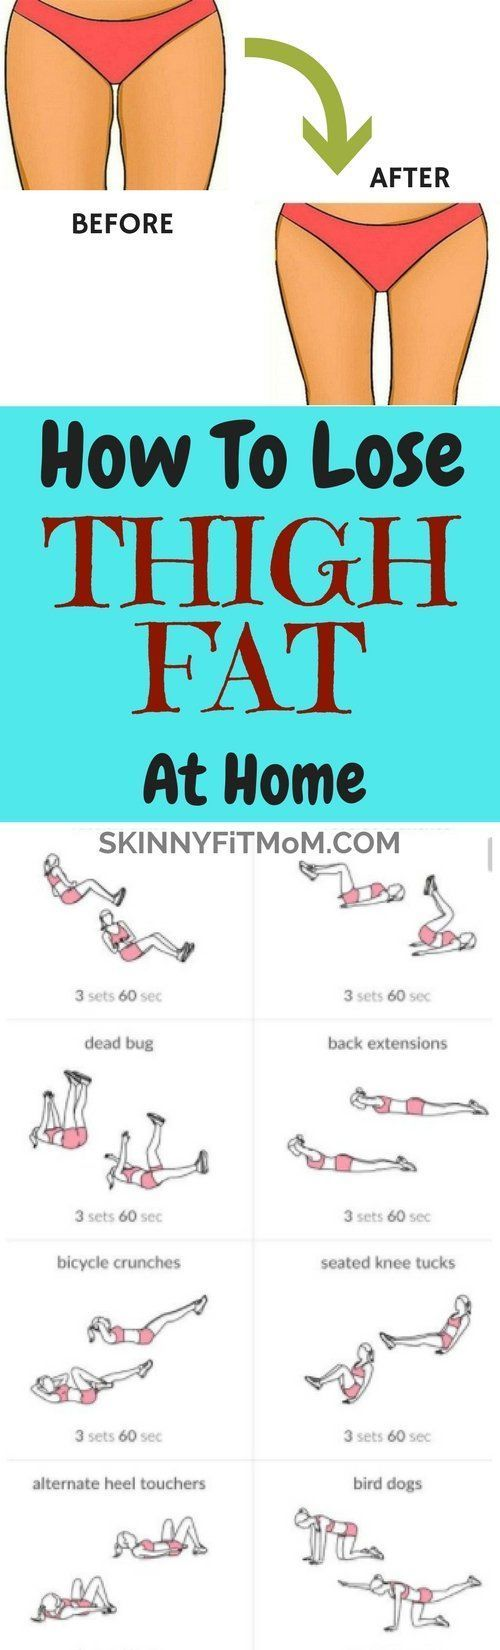 10 Best Exercises To Lose Thigh Fat Fast At Home #fitness #exercises